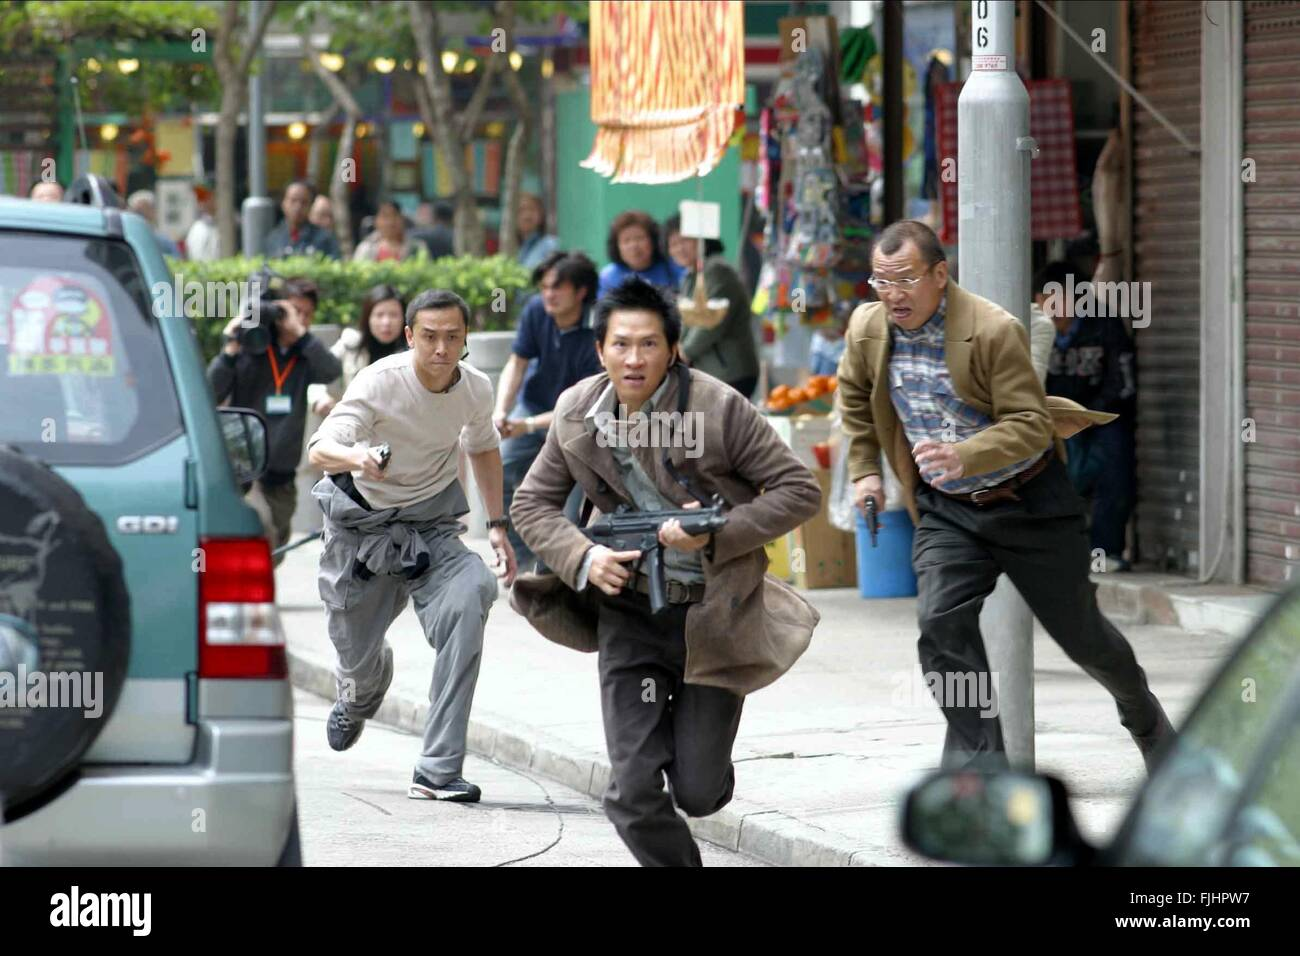 NICK CHEUNG BREAKING NEWS; DAI SI GIN (2004) - Stock Image